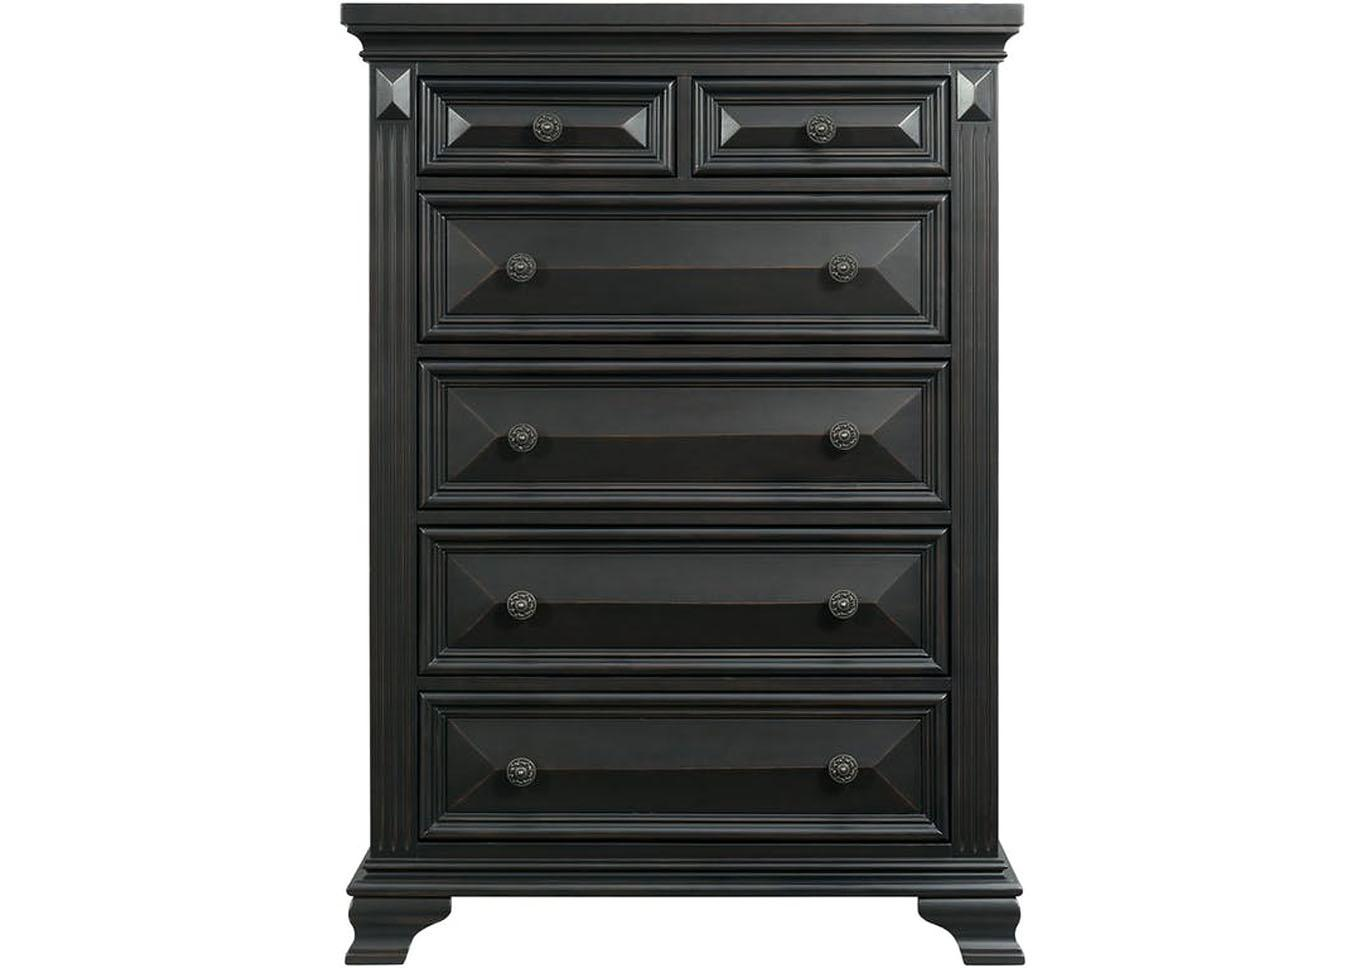 Calloway 6 Drawer Chest - Black,Instore